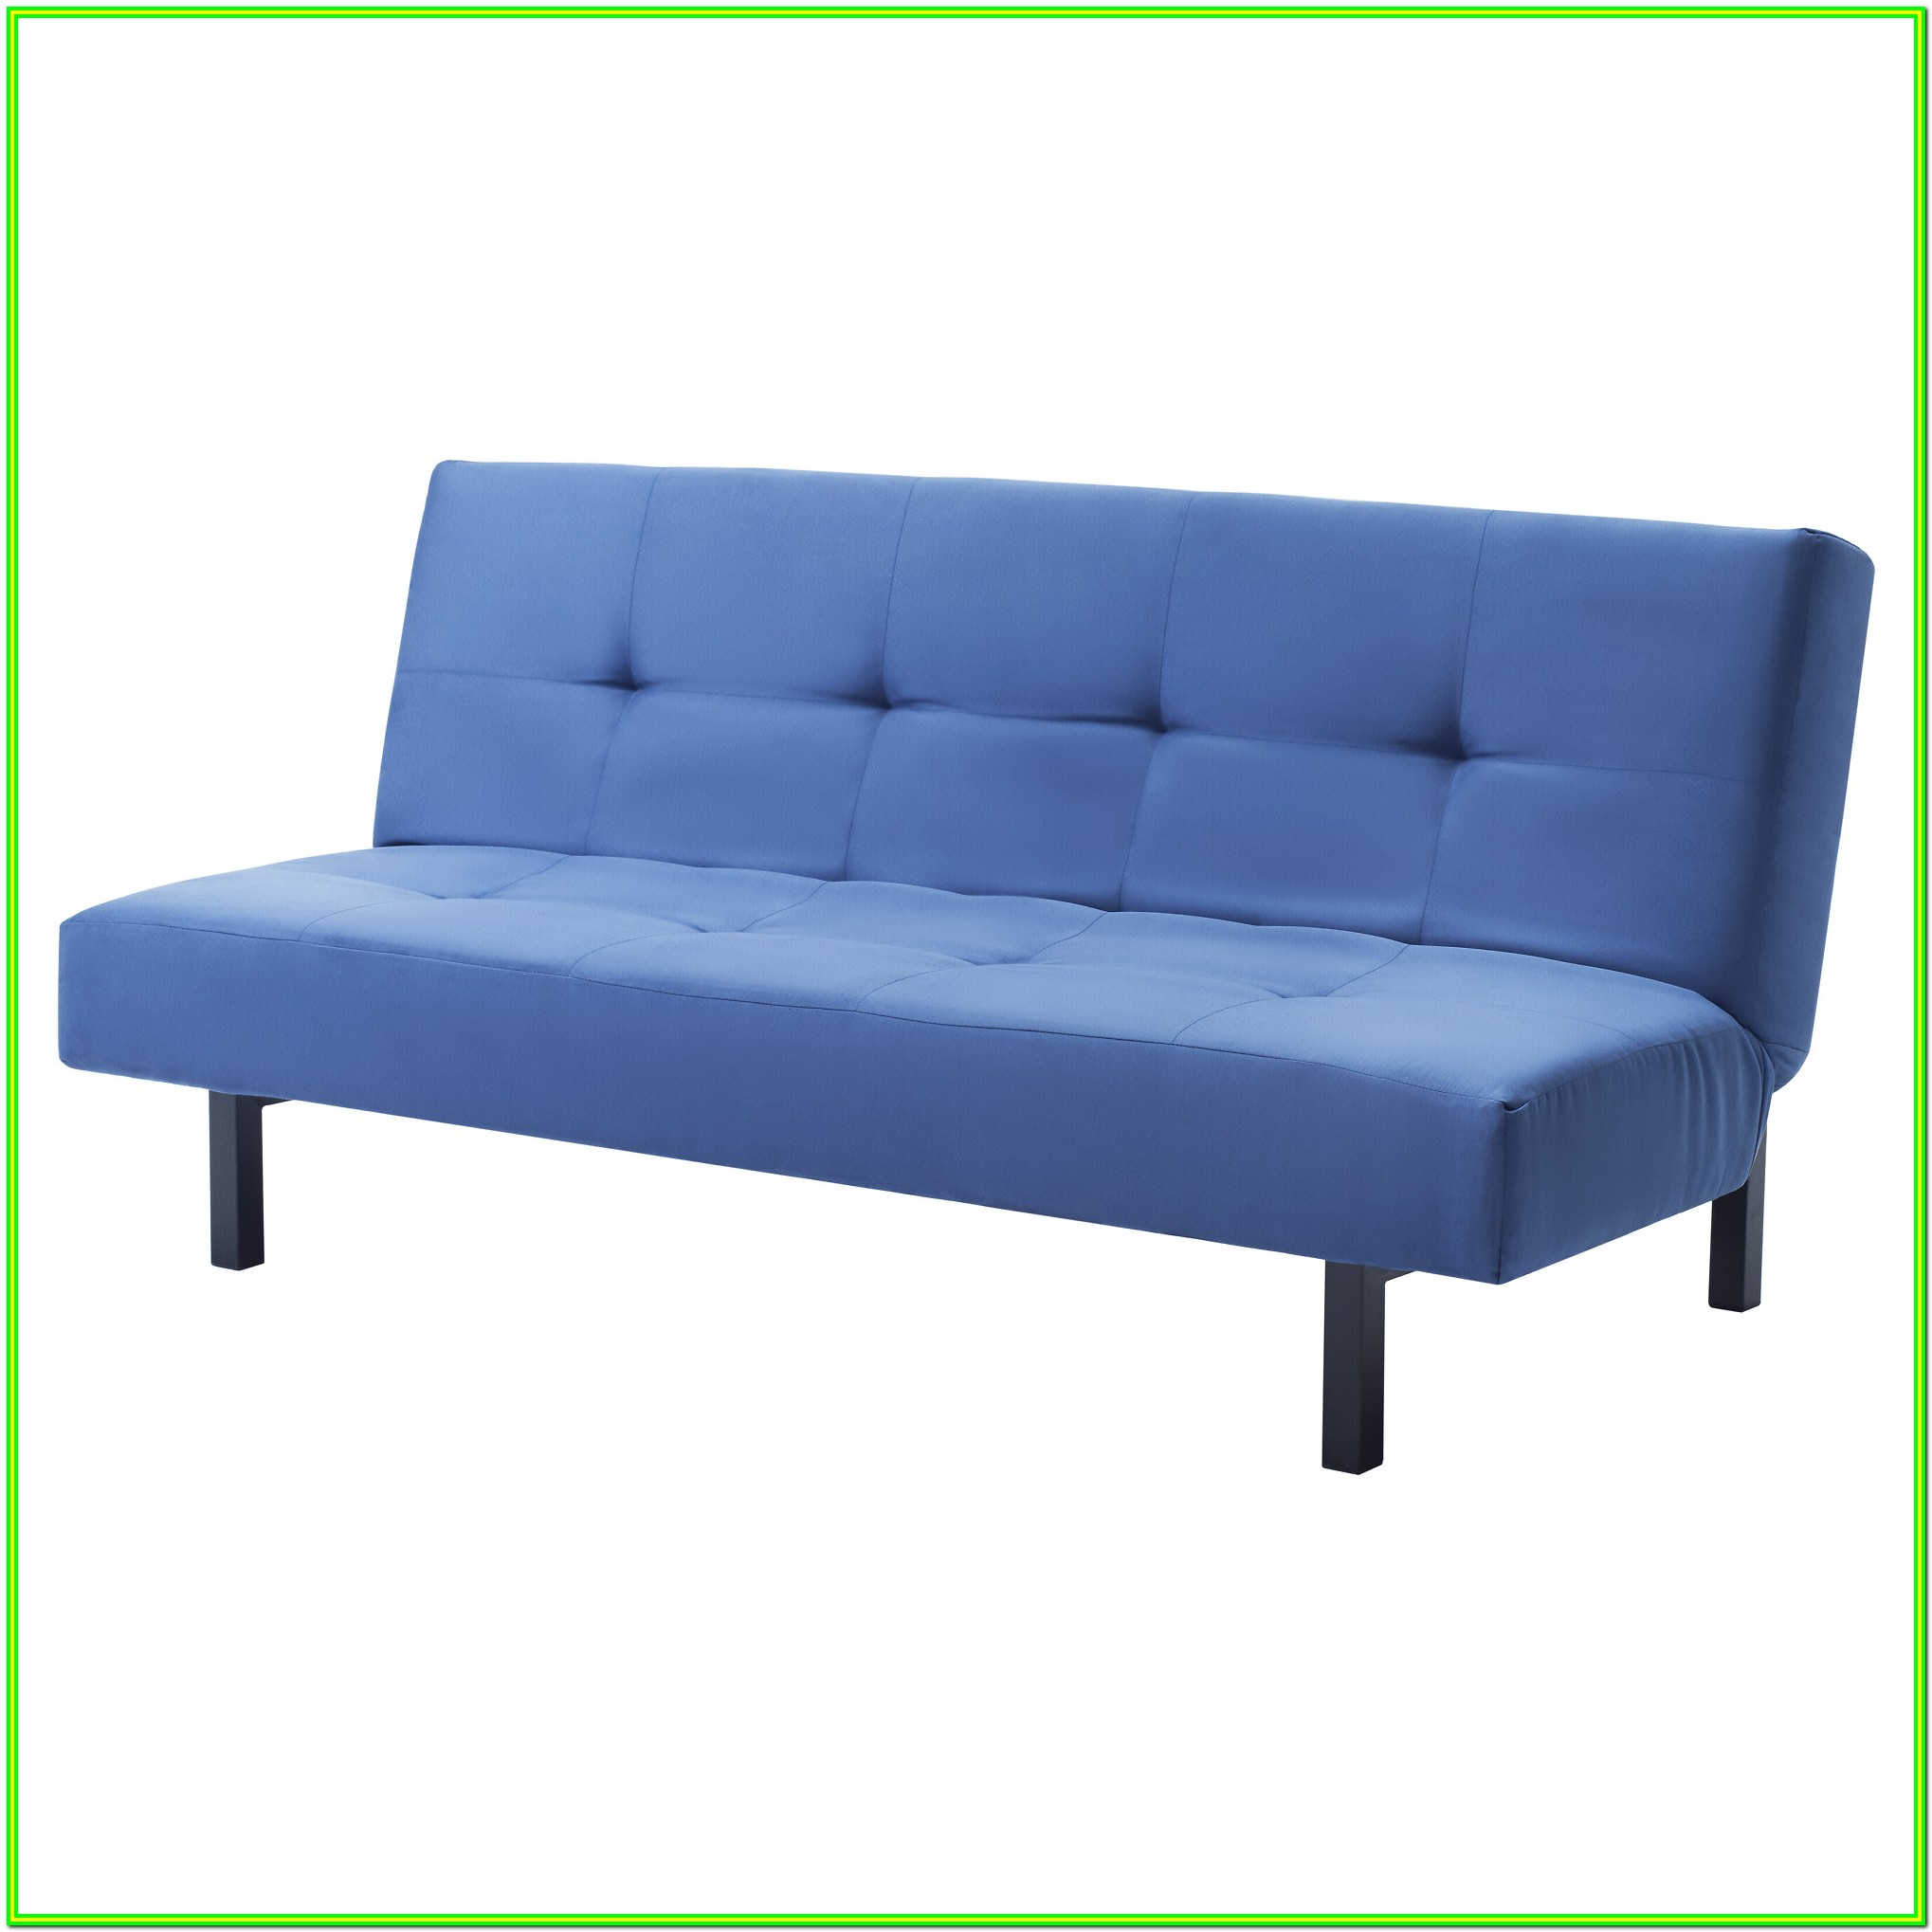 Replacement Mattress For Pull Out Sofa Bed Canada